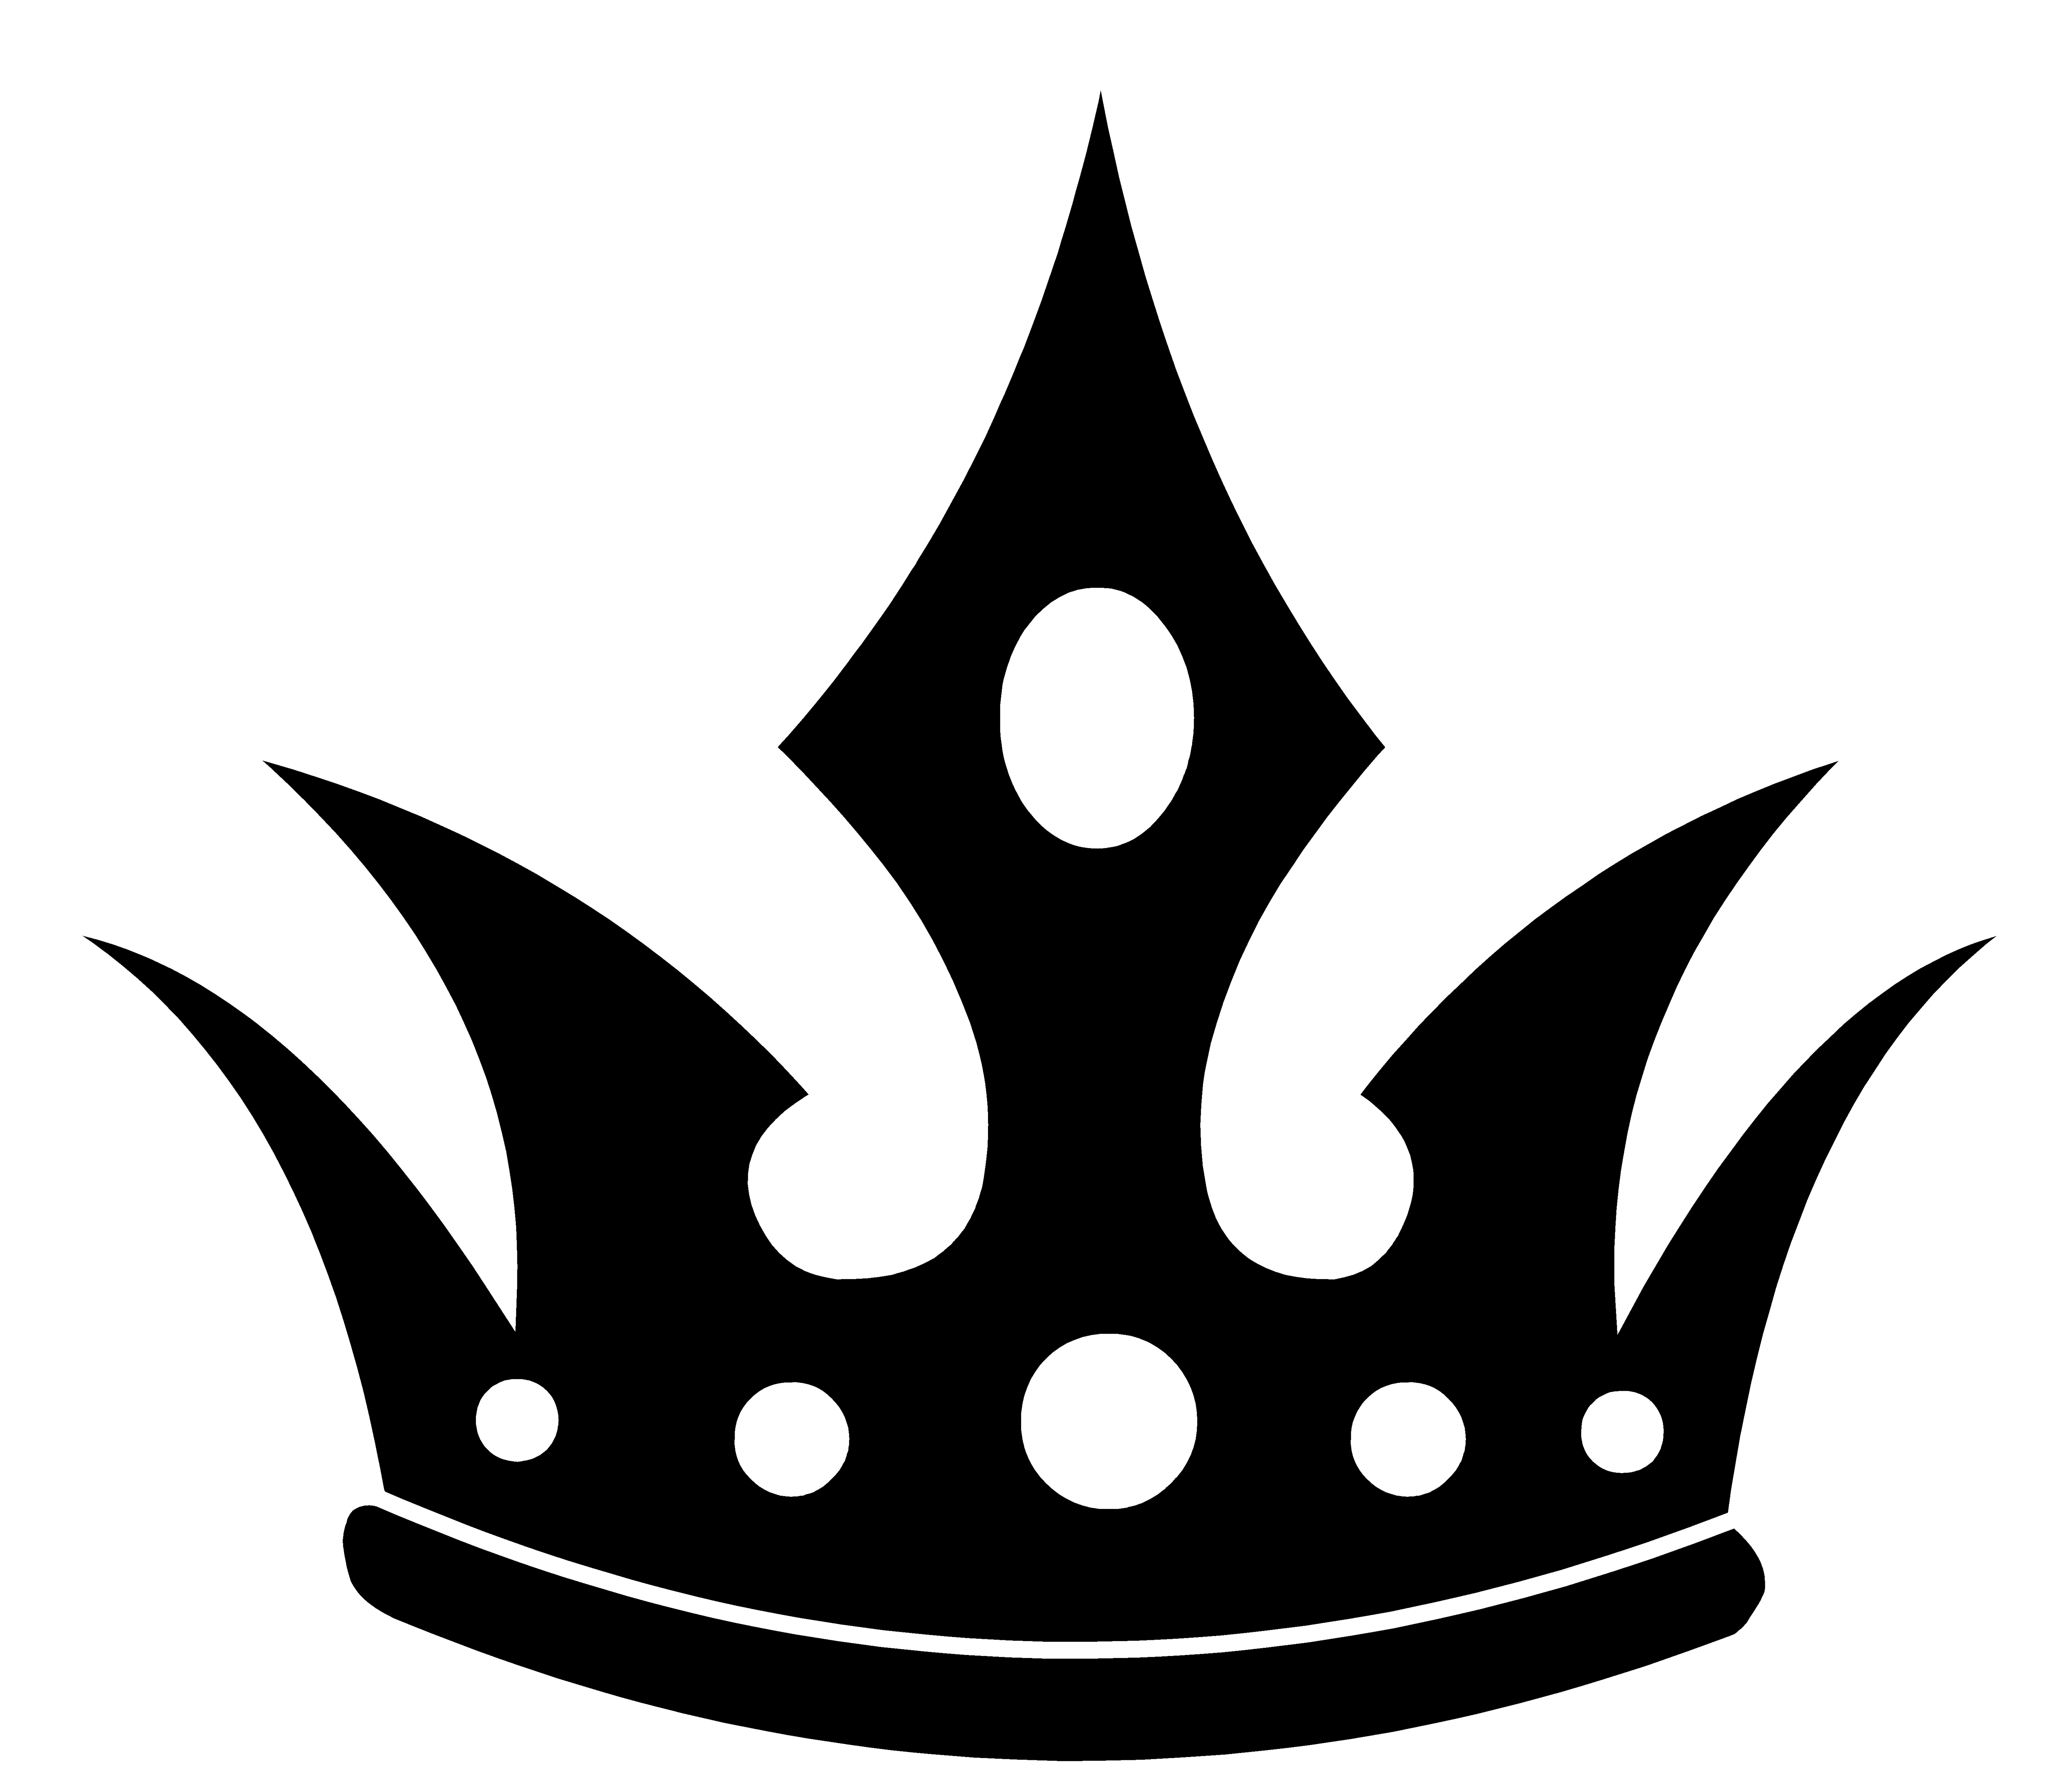 vector royalty free download Crown vector me pinterest. King clipart black and white